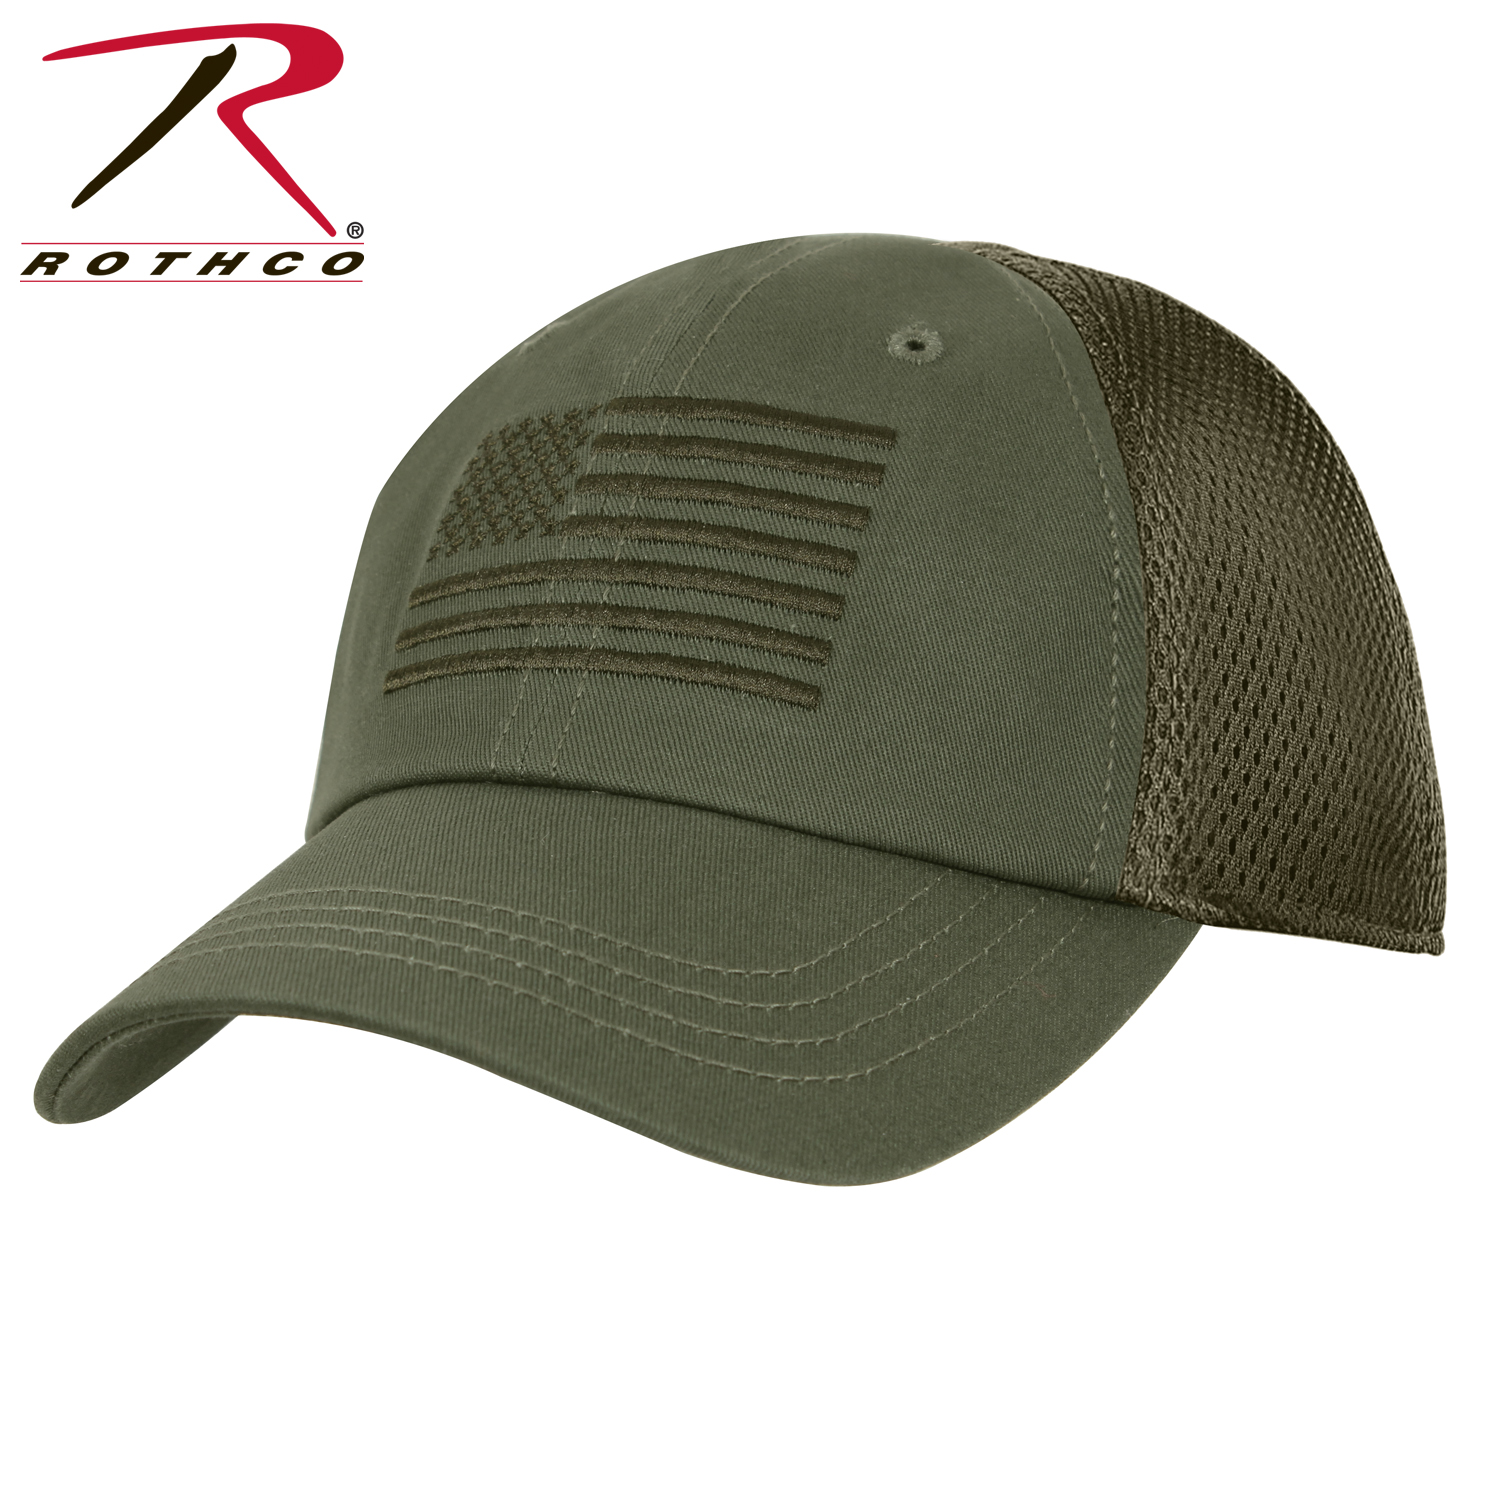 Rothco Multicam Tactical Mesh Back Cap With Embroidered US Flag  a5e4c3c92d9